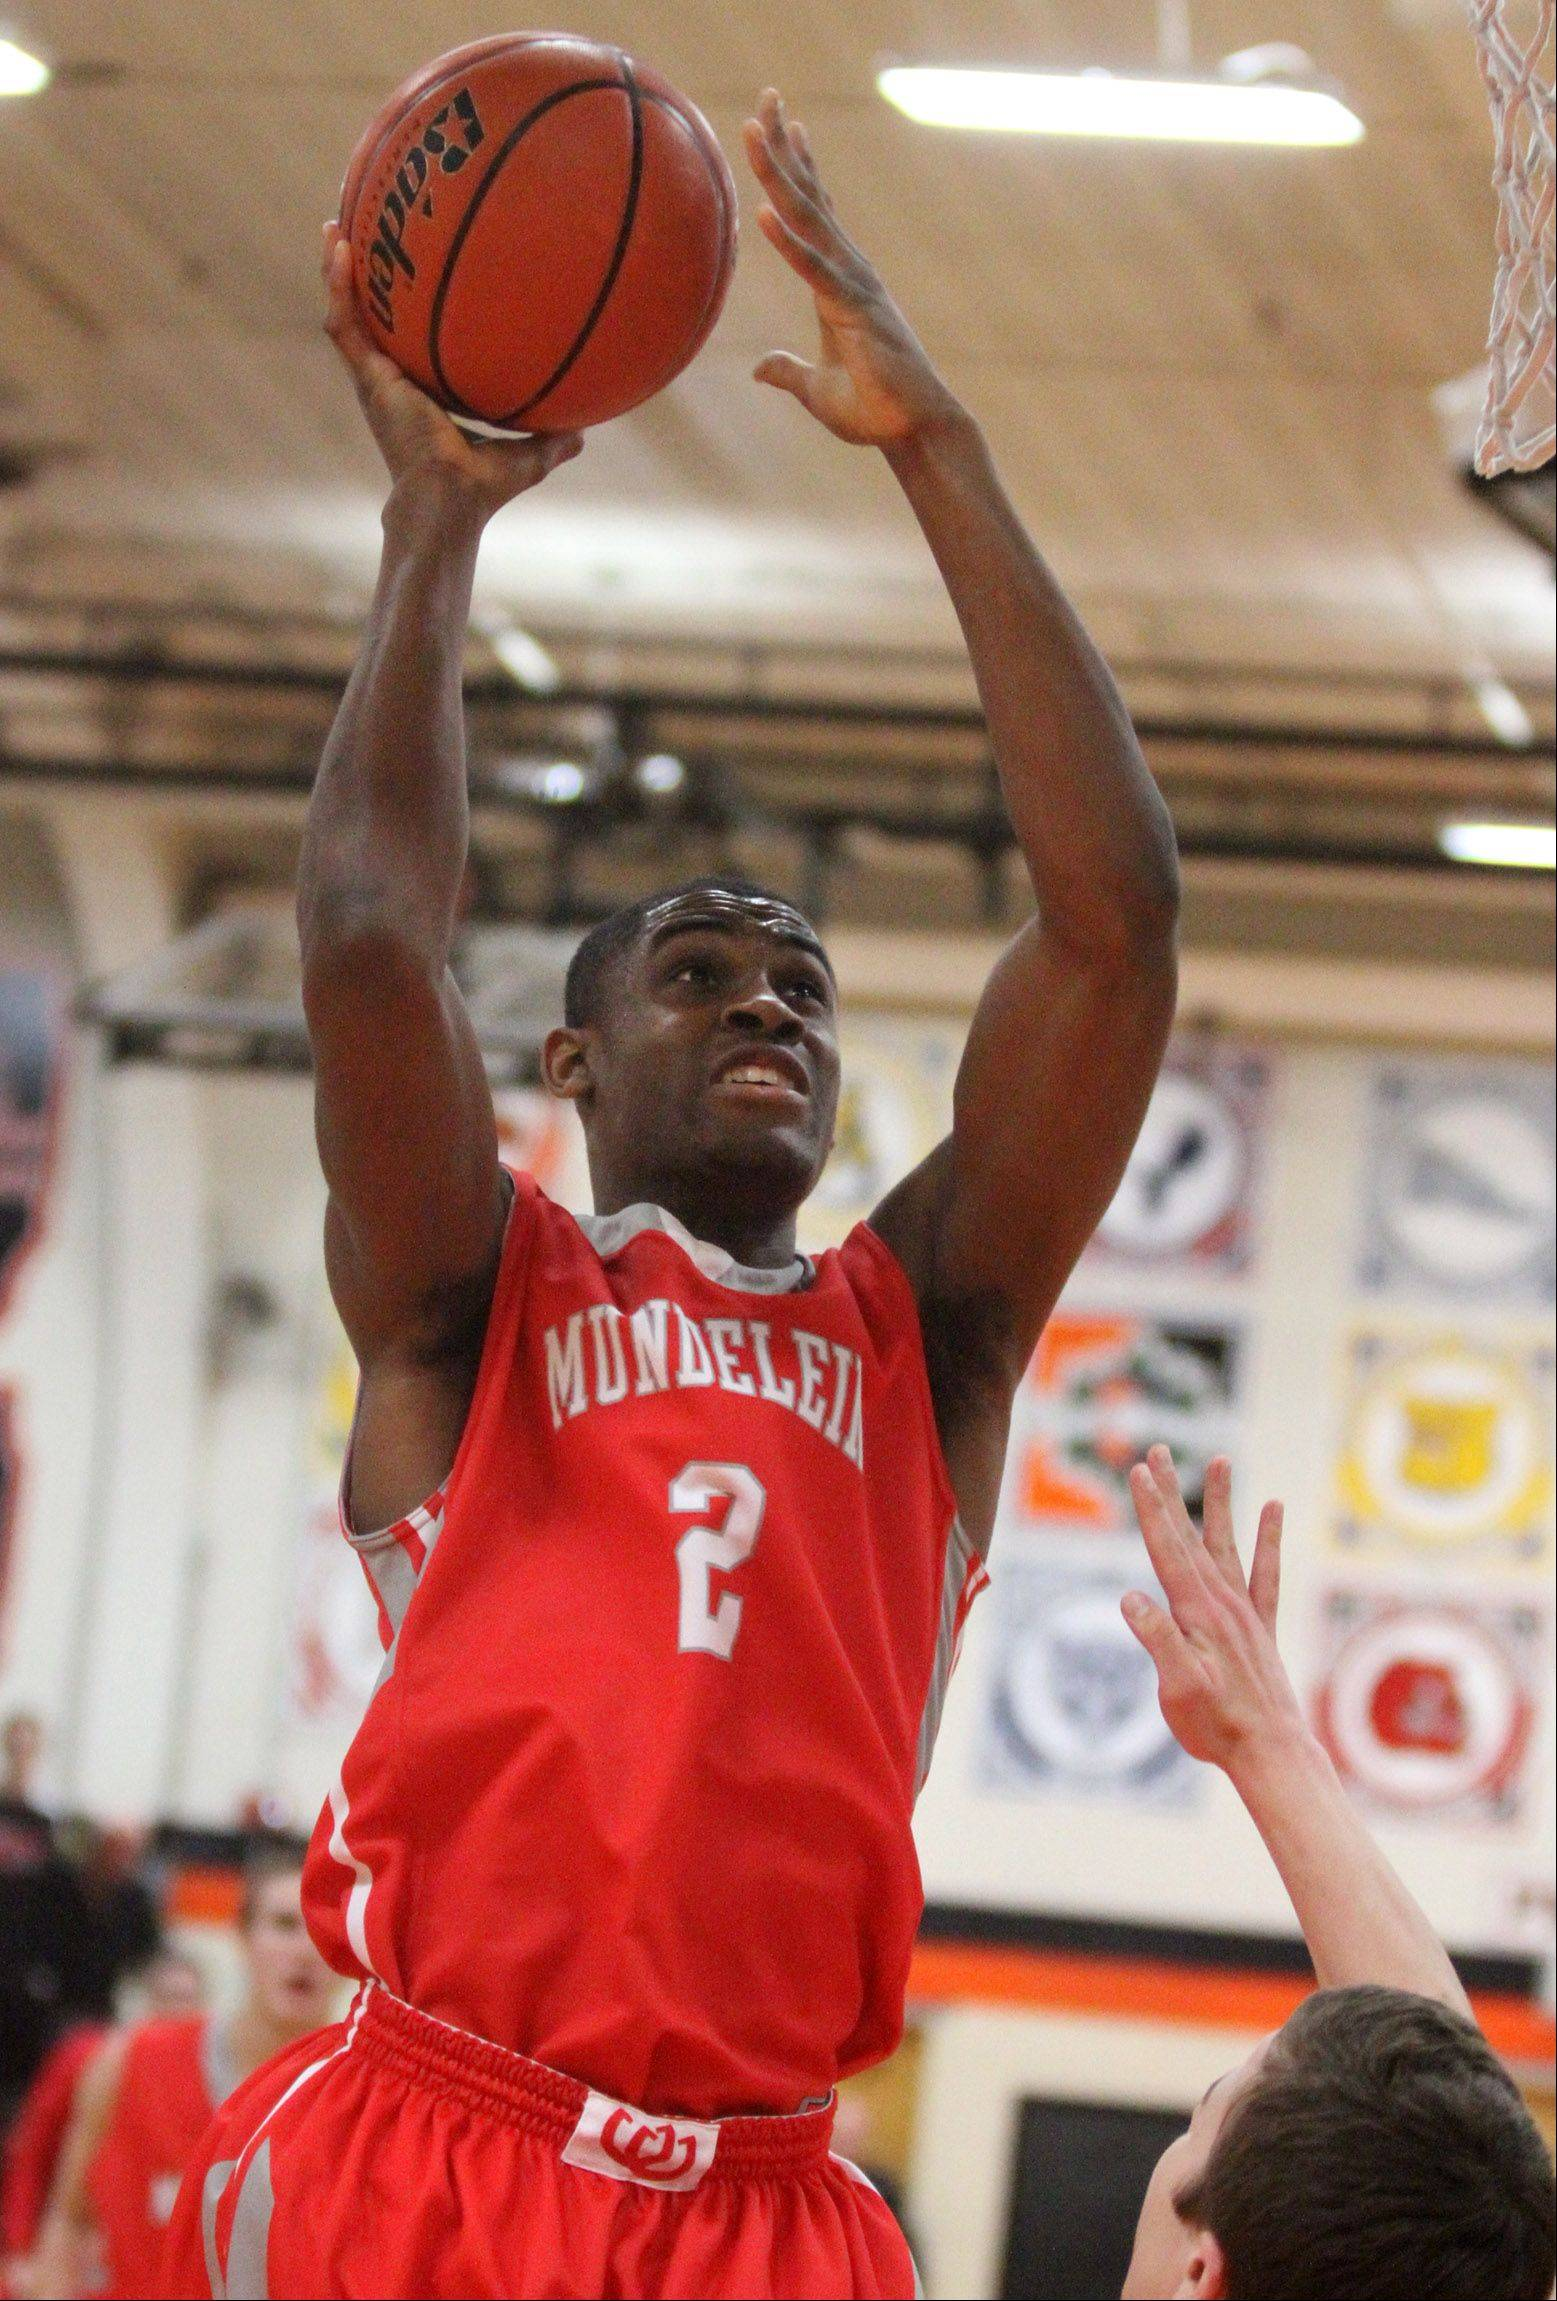 Mundelein forward Chino Ebube shoots against Libertyville during the first half at Libertyville on Friday.